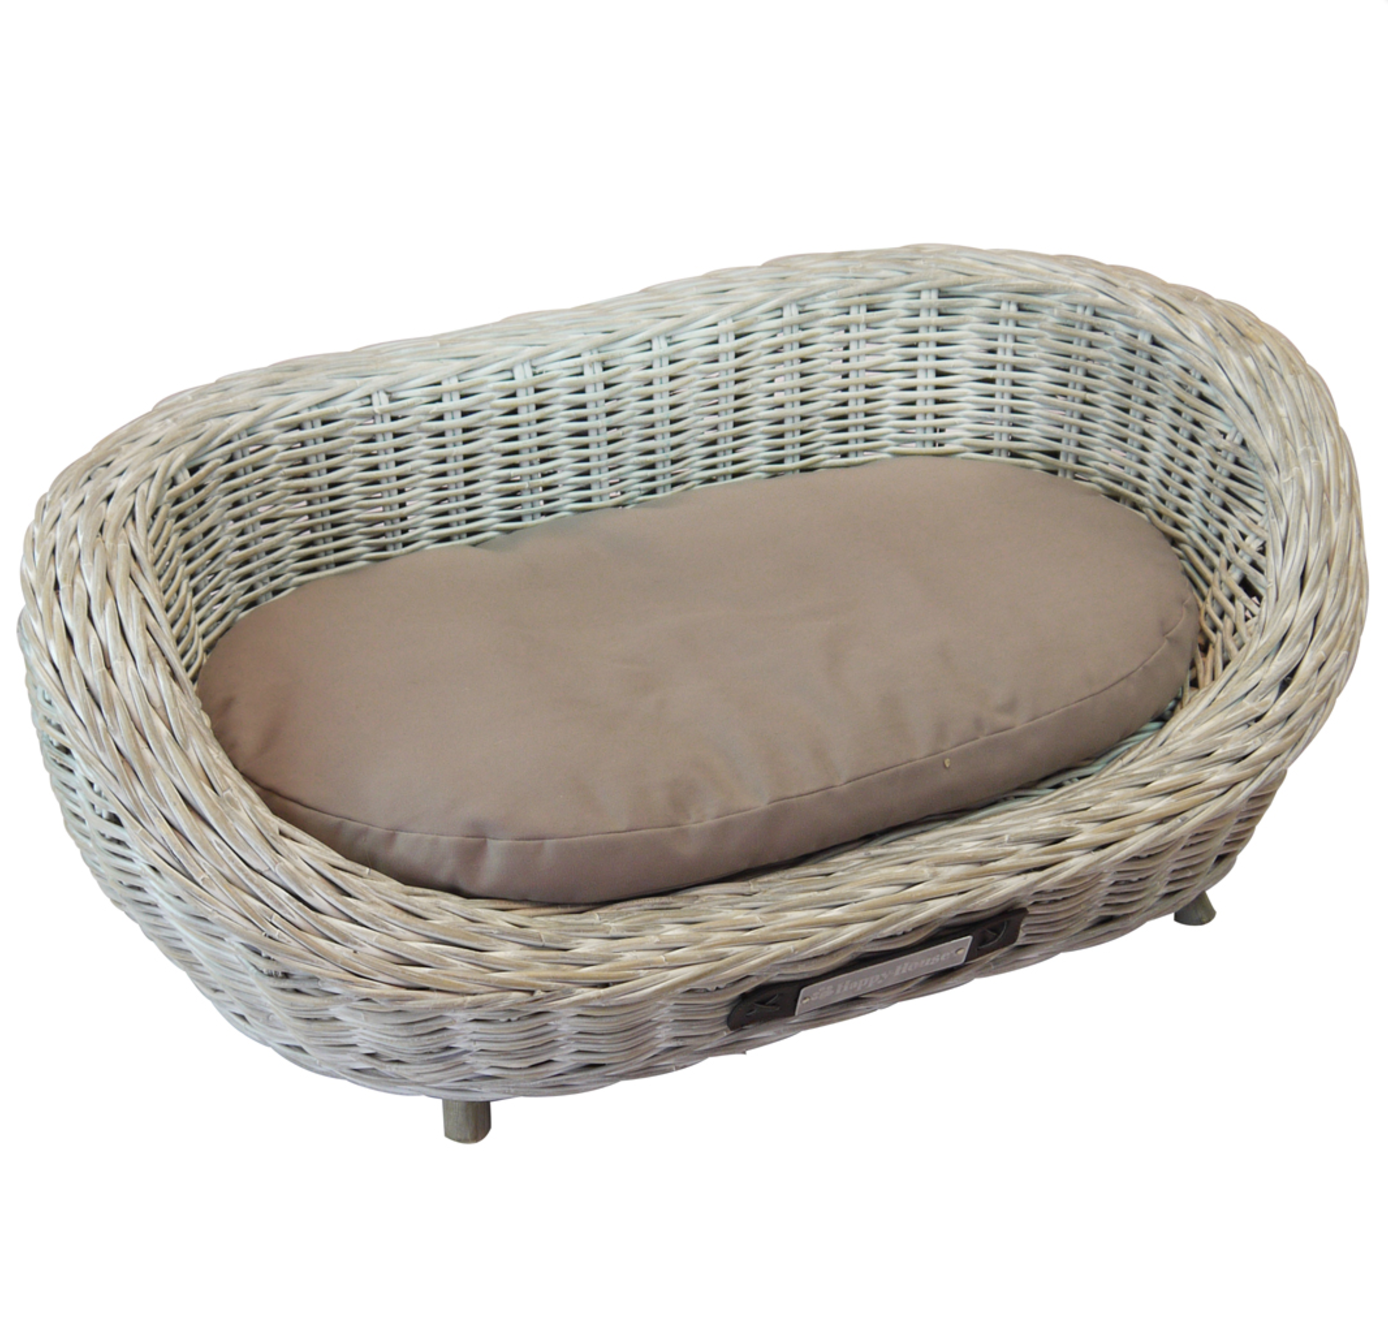 Full Size of Rattan Sofa Cover Uk Furniture Bedroom Set Table Outdoor Cushions Beds Argos Mauritius Singapore Sale And Chairs Aldi For Happy House Korb Oval Weiss Hundekrone Sofa Rattan Sofa